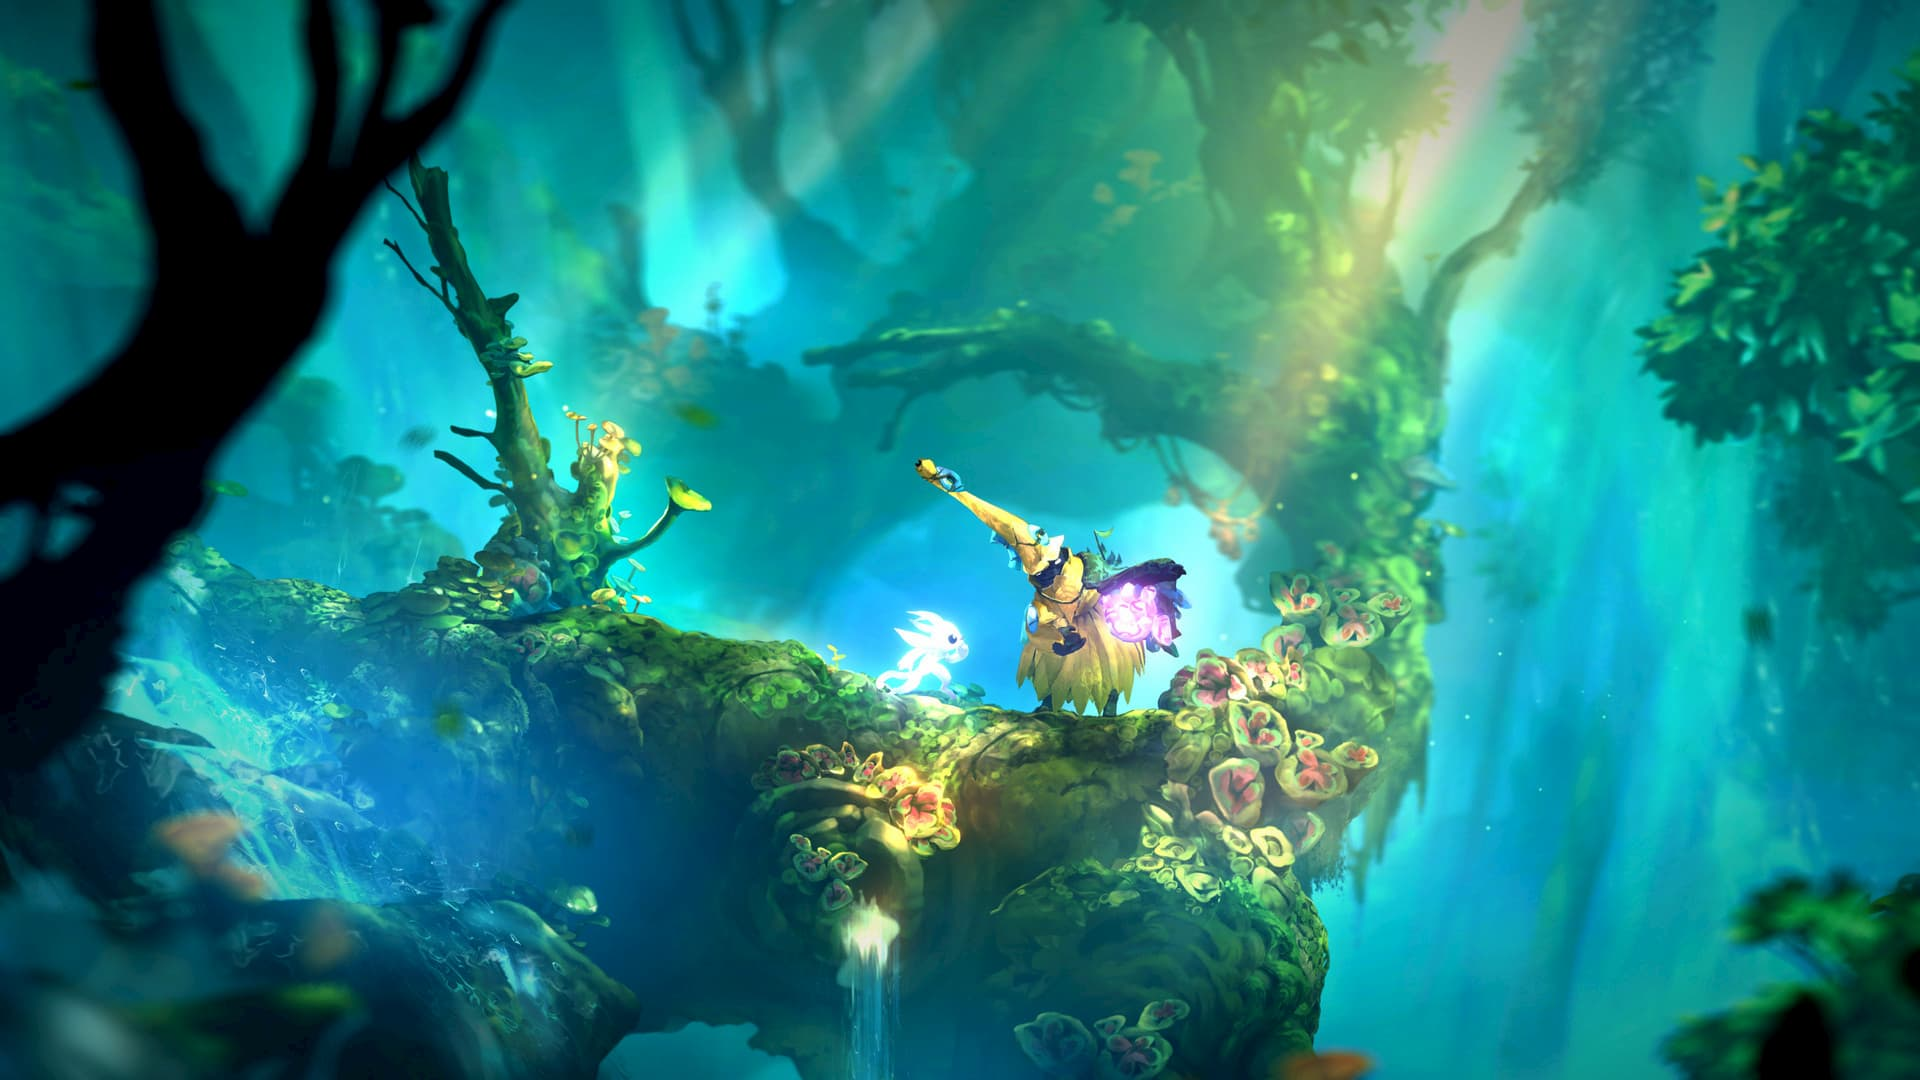 Ori and the Will of the Wisps hit with a small delay - SlashGear